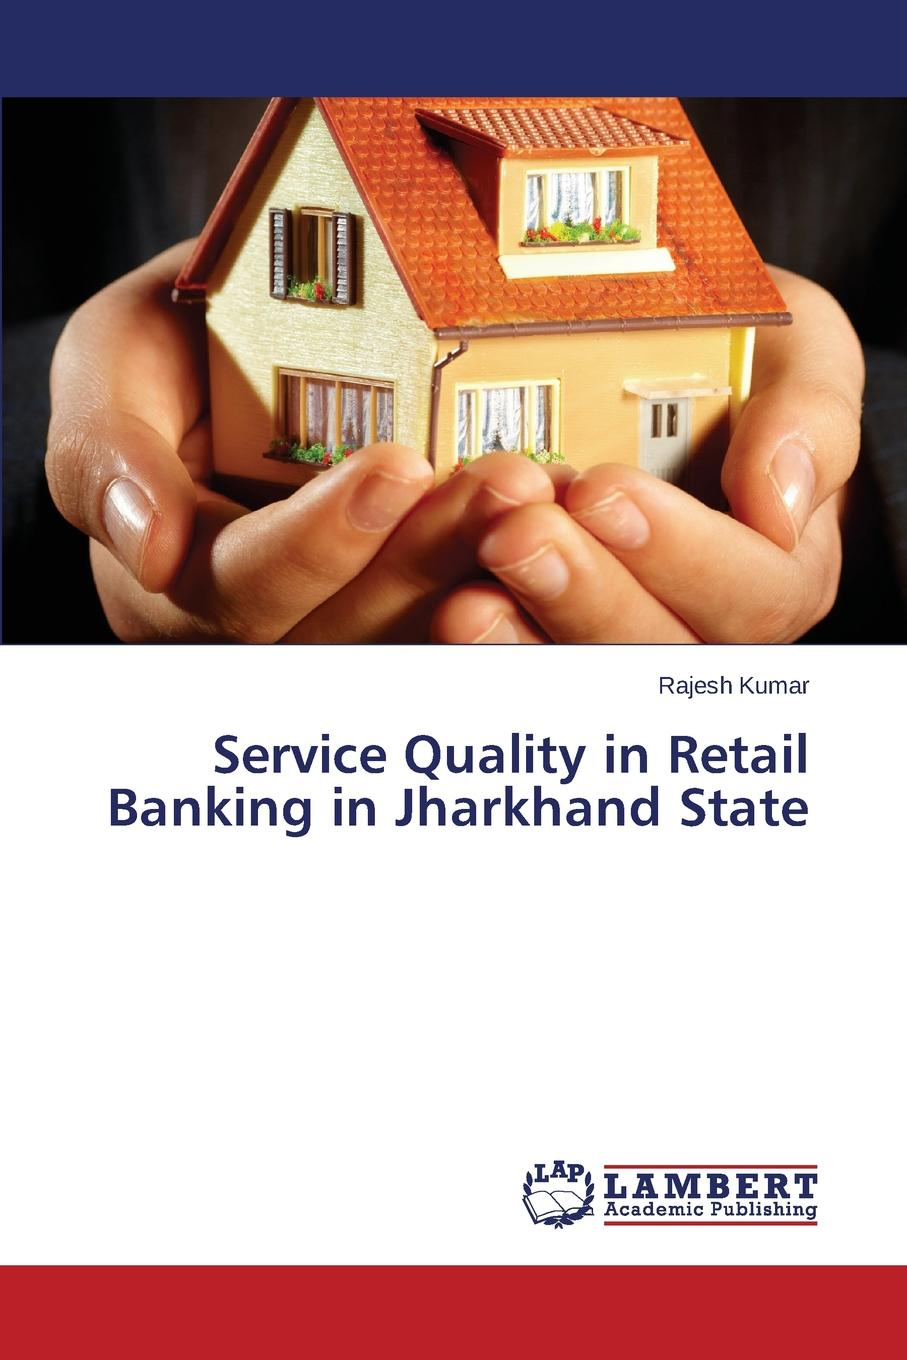 Kumar Rajesh Service Quality in Retail Banking in Jharkhand State deborah dilley k essentials of banking isbn 9780470332269